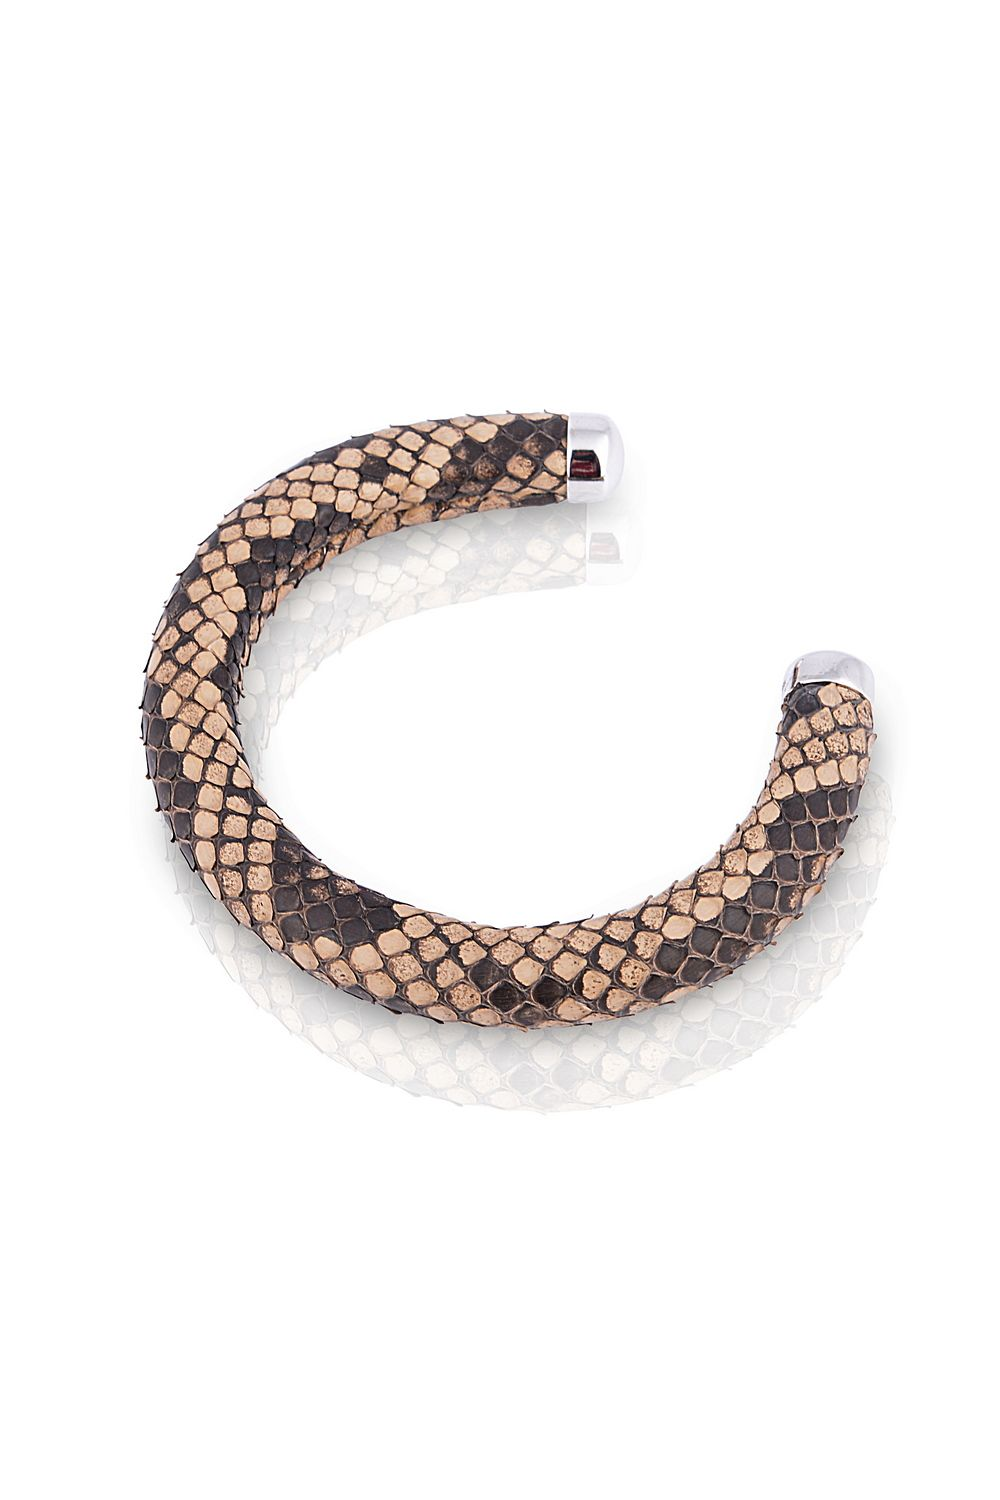 Round rigid bracelet in molurus python and silver ends (AKN026 ...